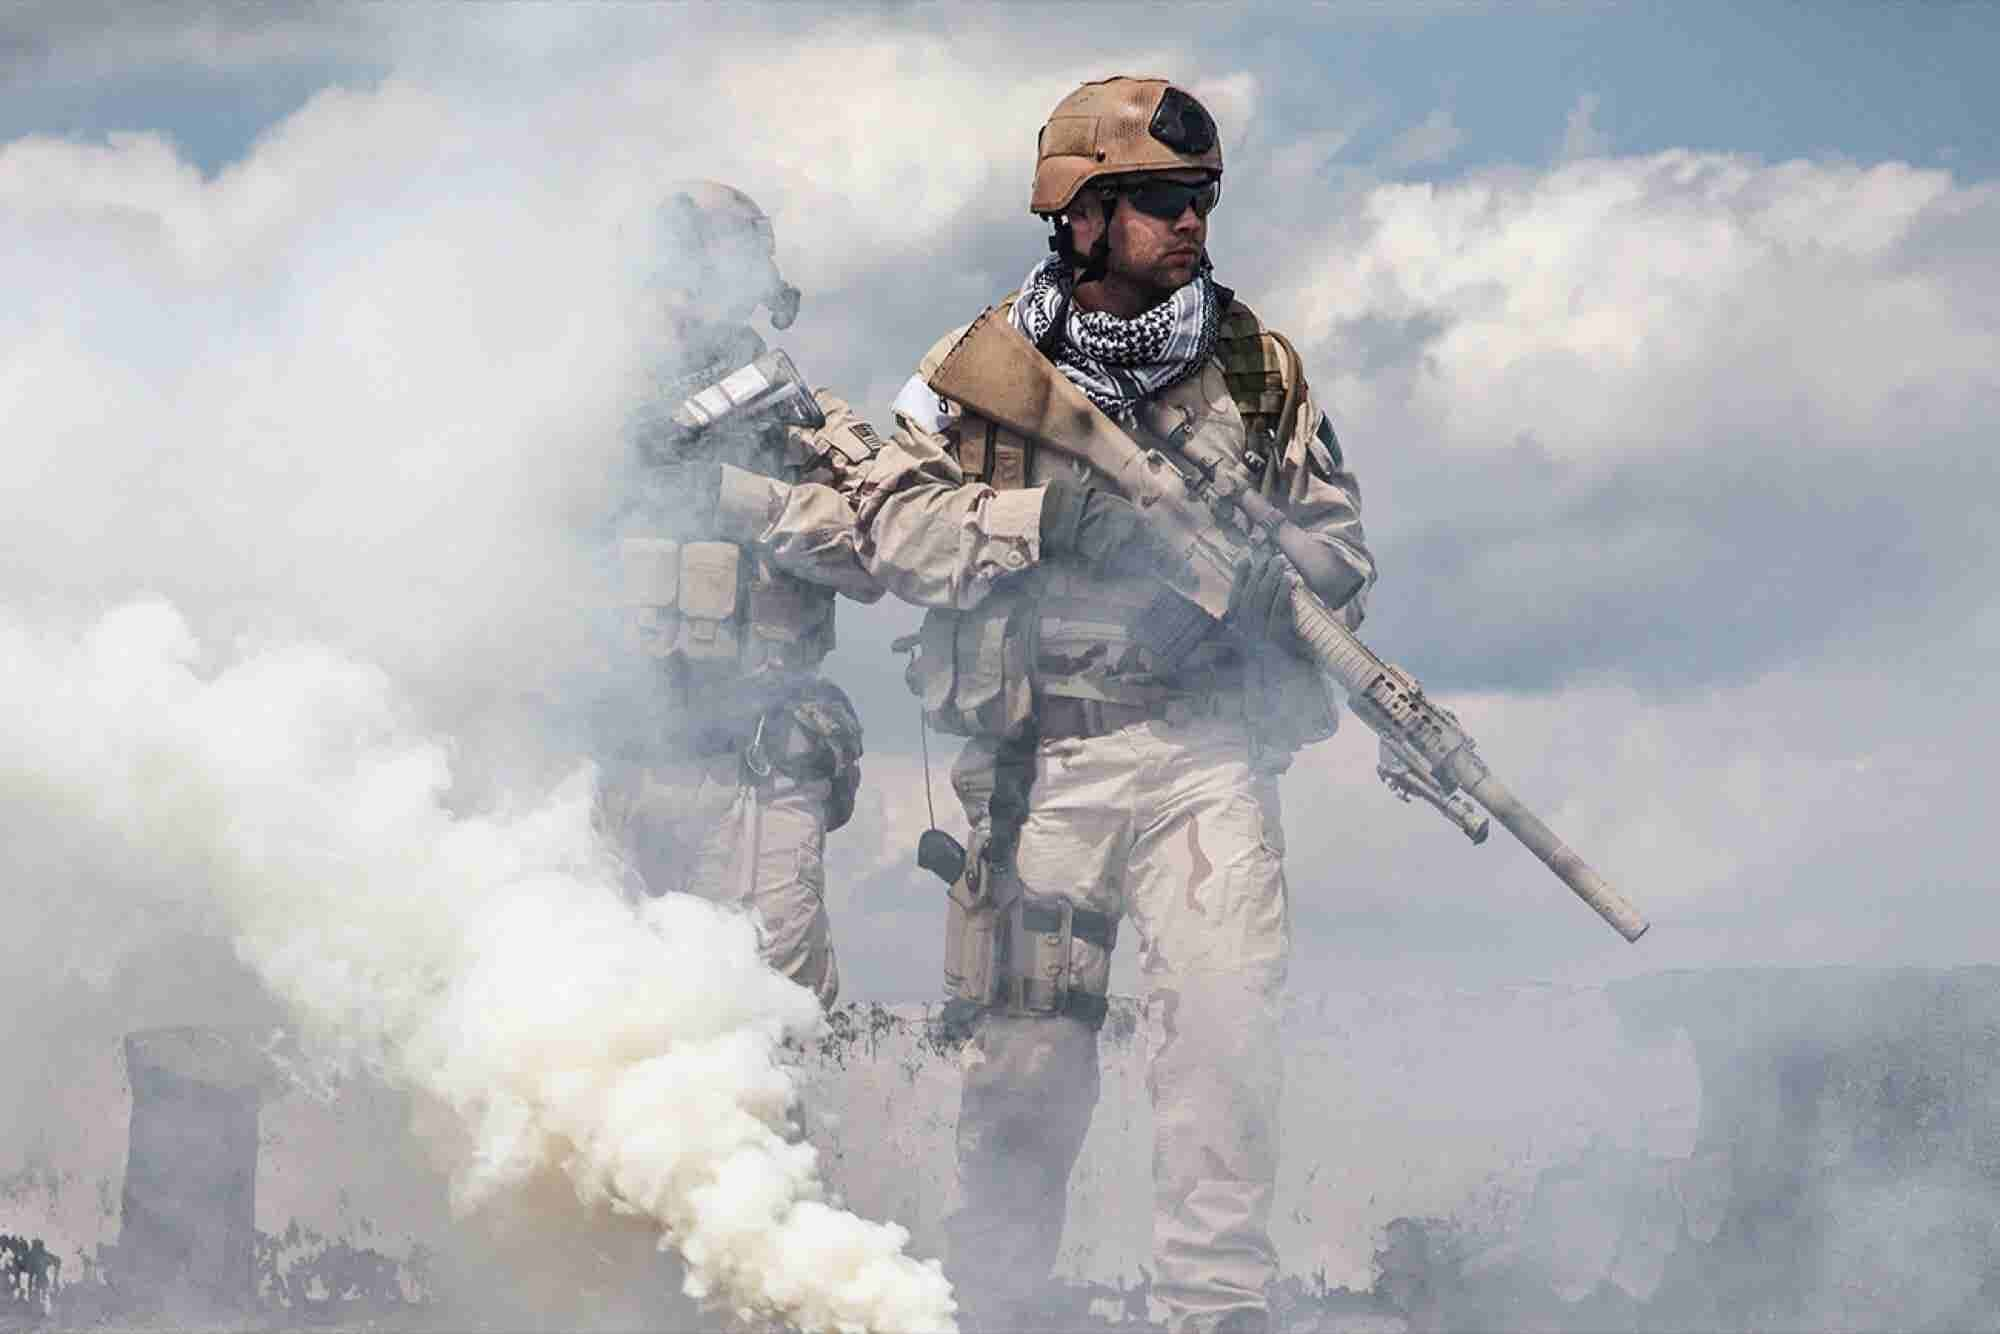 Video: The Secret Business of Training Navy SEALs